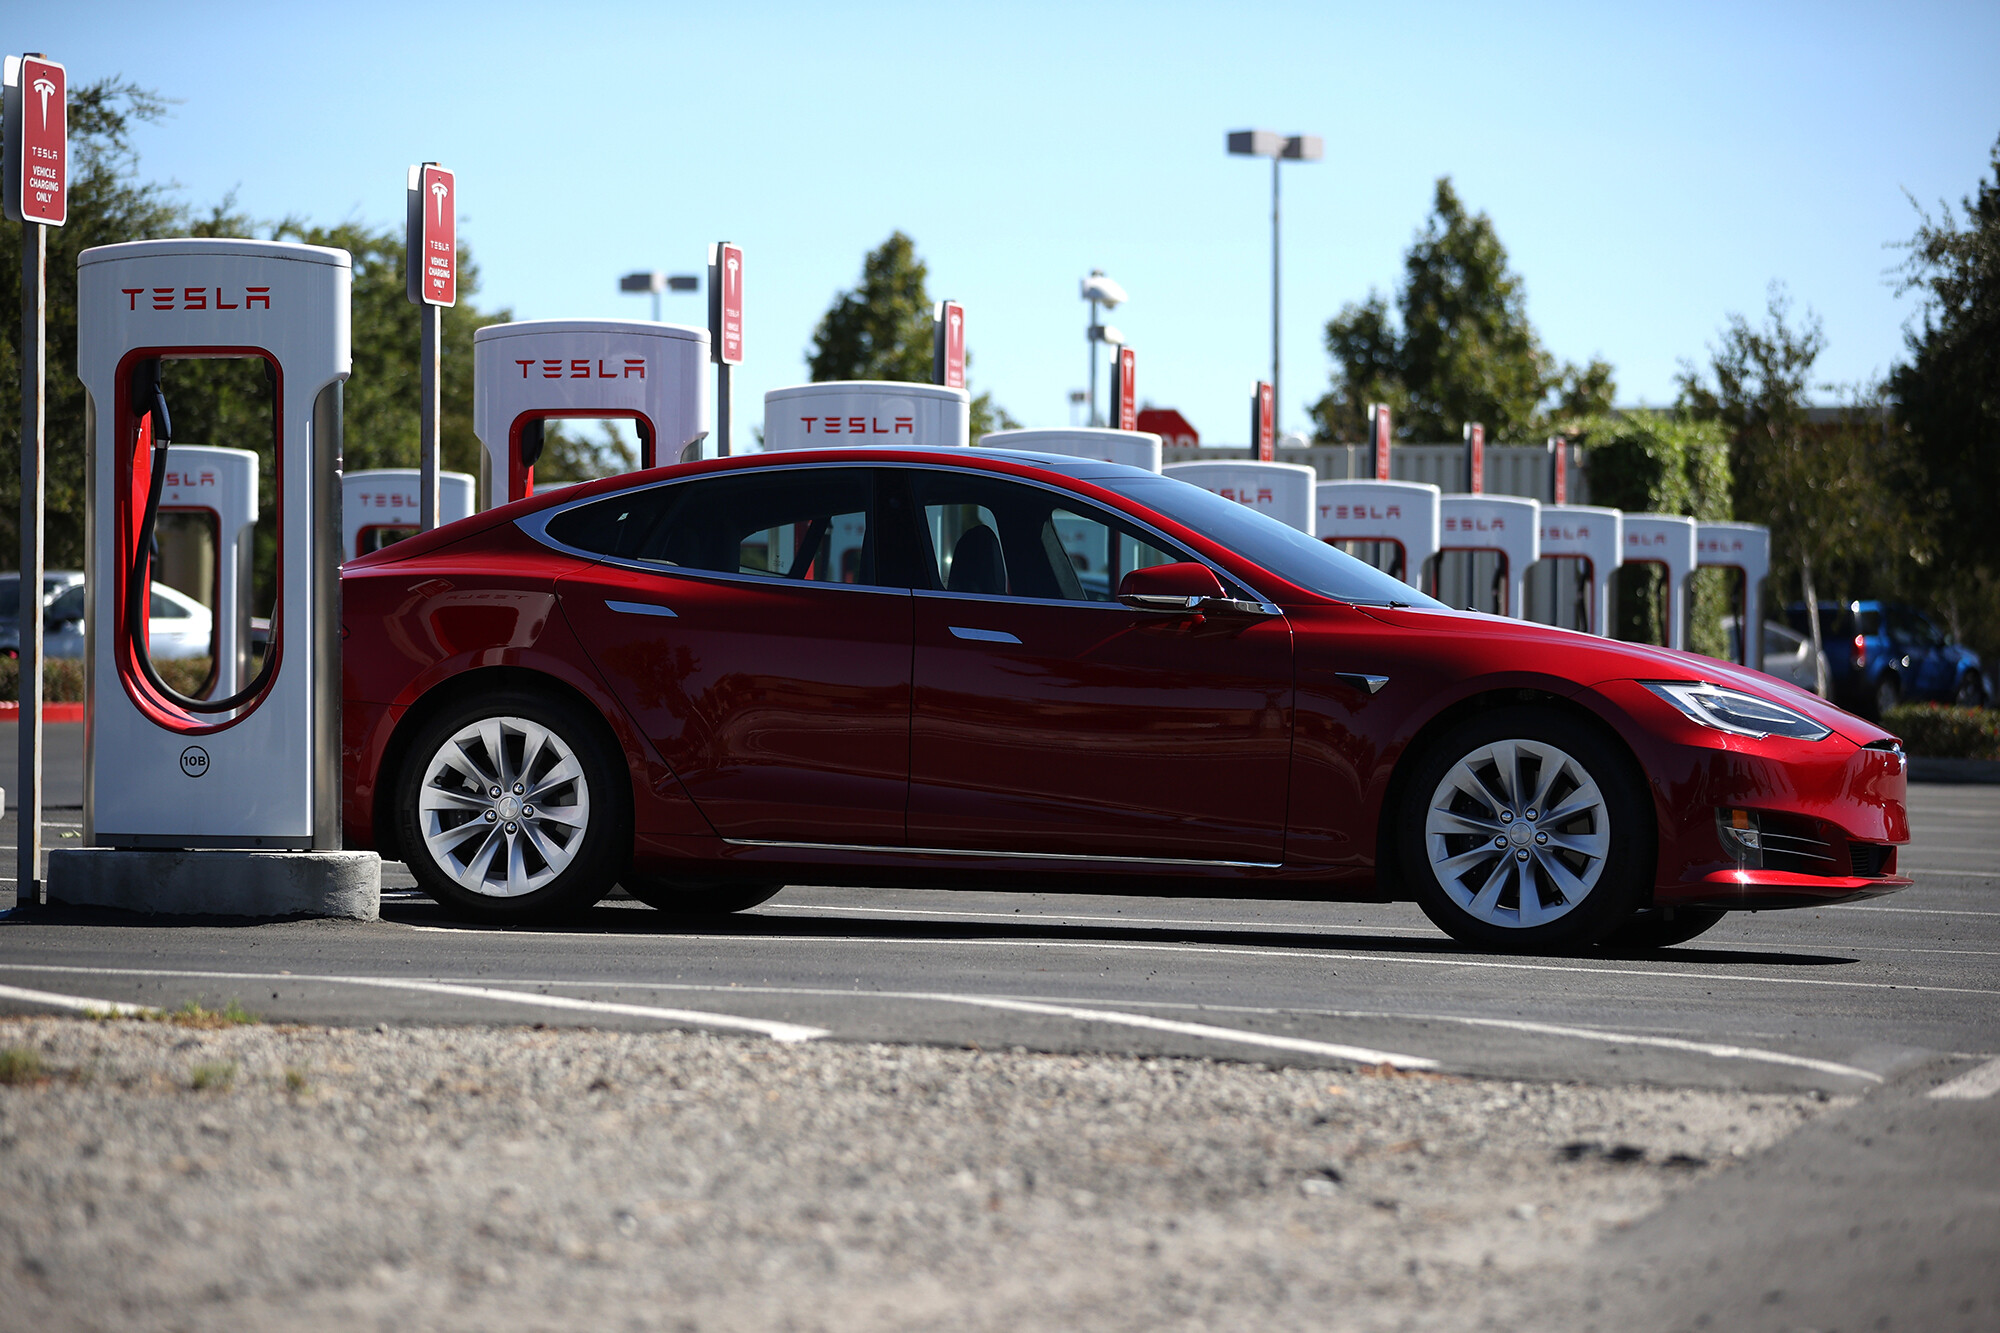 The Dow and S&P 500 hit record highs as Tesla stock electrifies